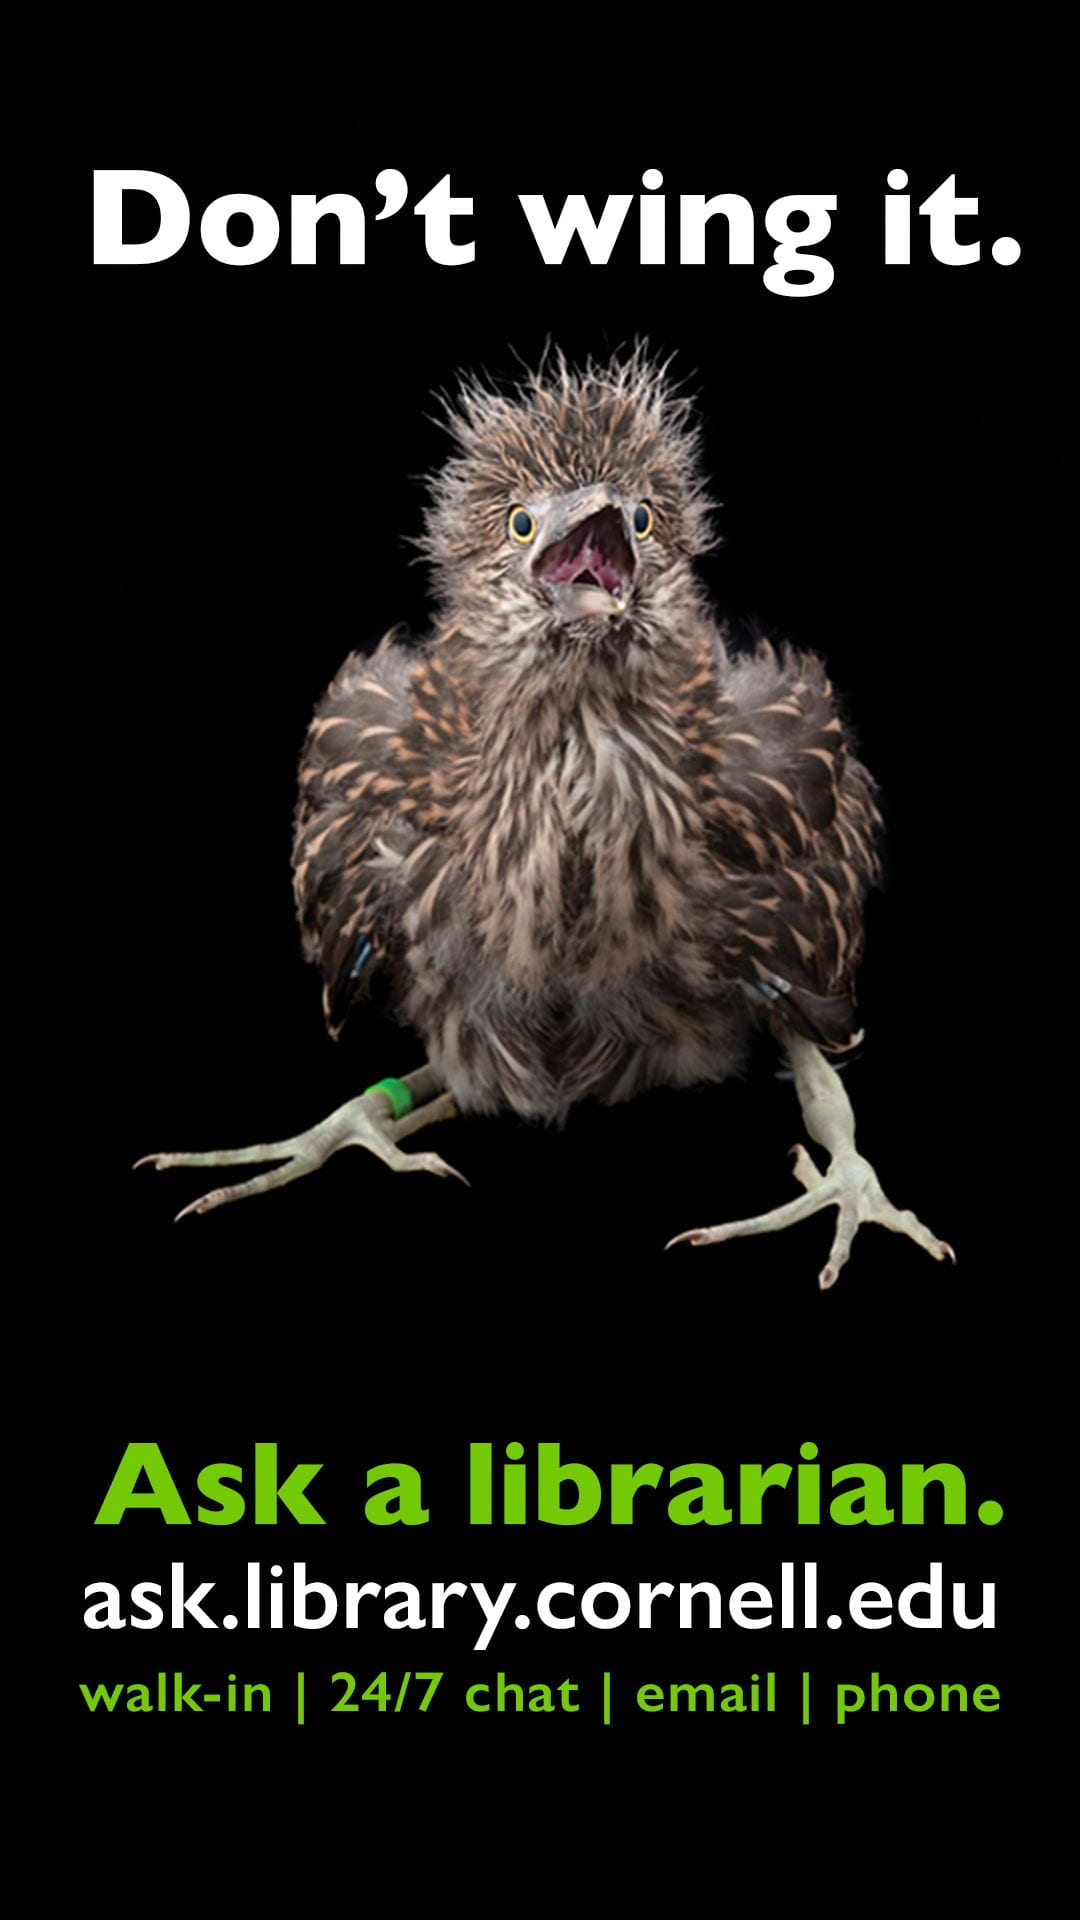 Don't Wing it. Ask a Librarian. Visit ask.library.cornell.edu for more infomation.